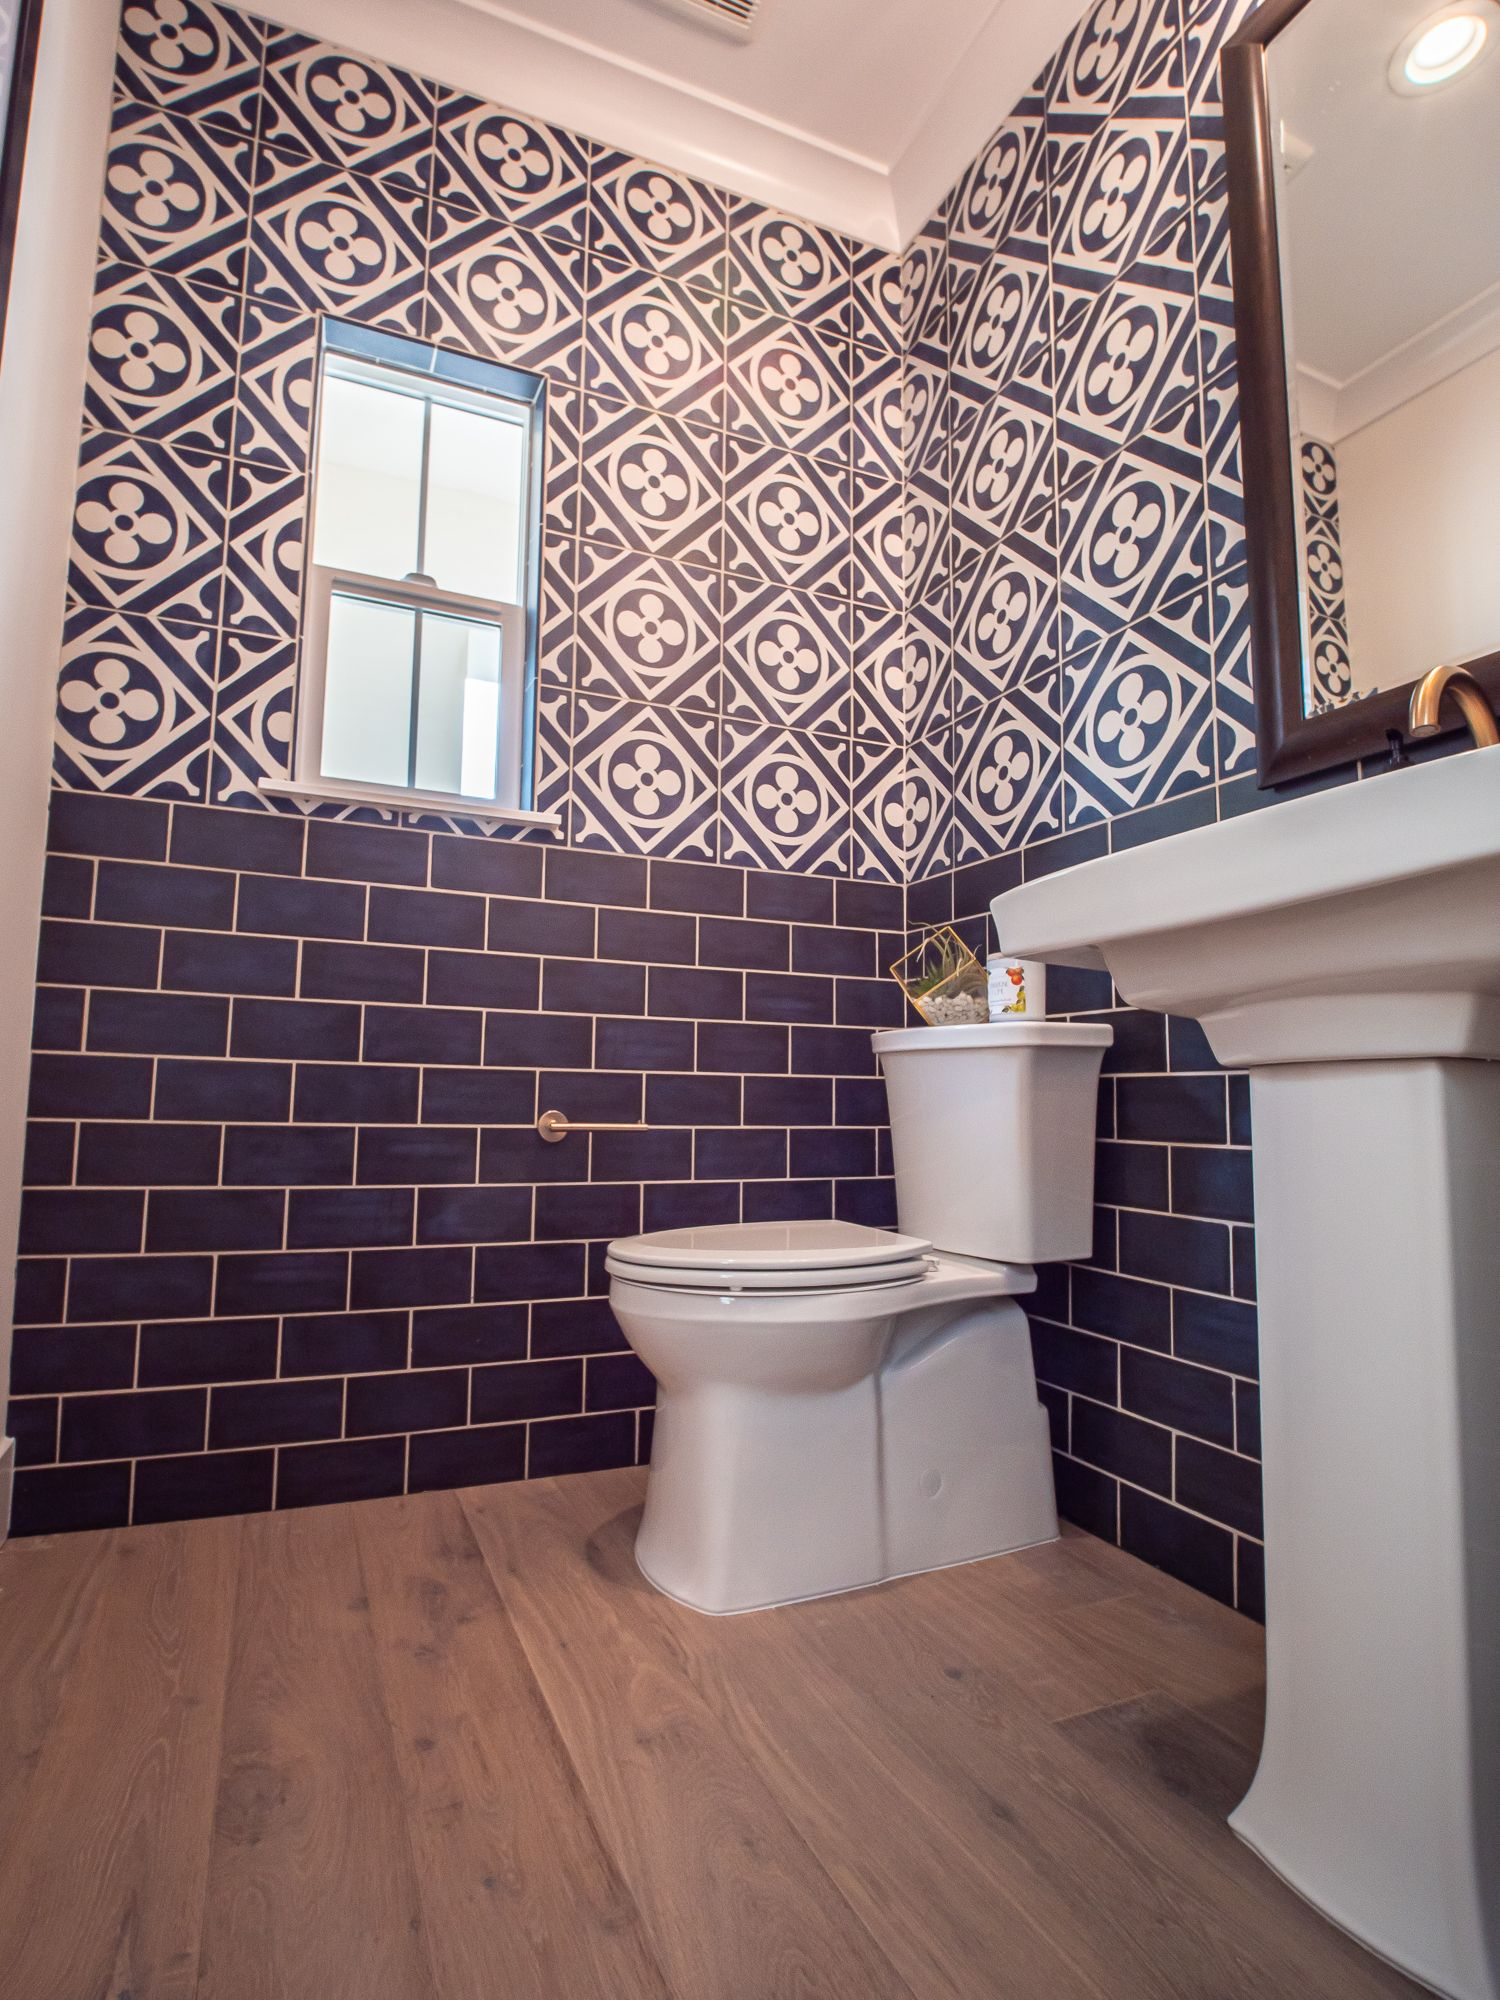 Bathroom featured in the Village Courts Collection Residence 9 By BlackPine Communites